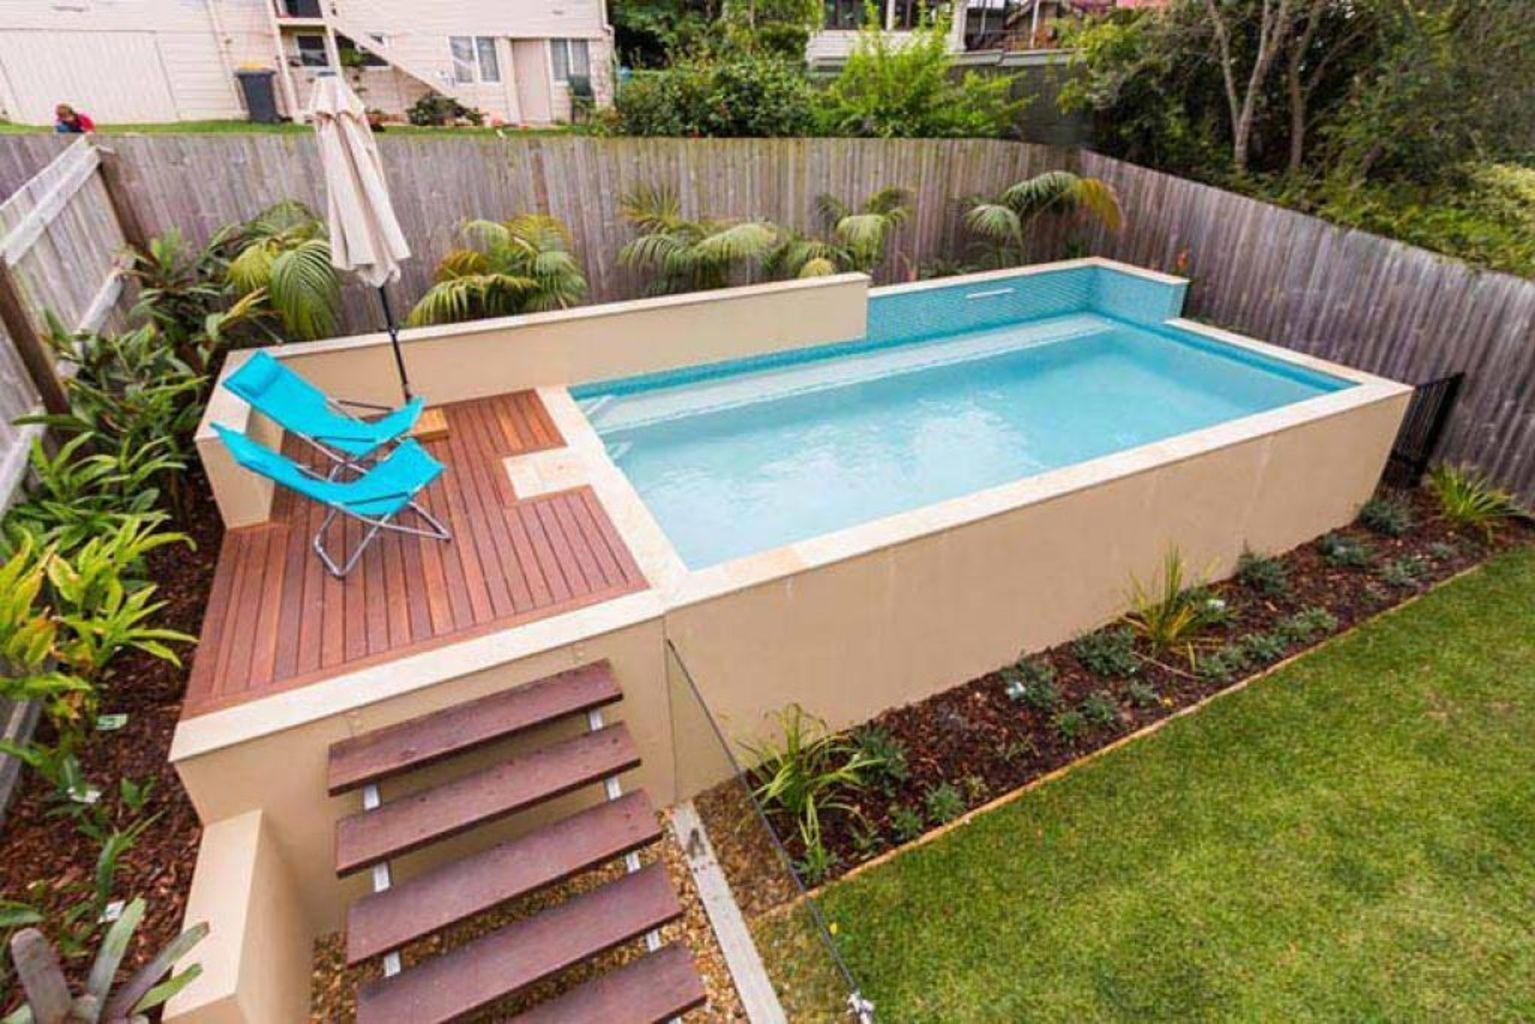 Small swimming pools made for small spaces and tight budgets Part 26